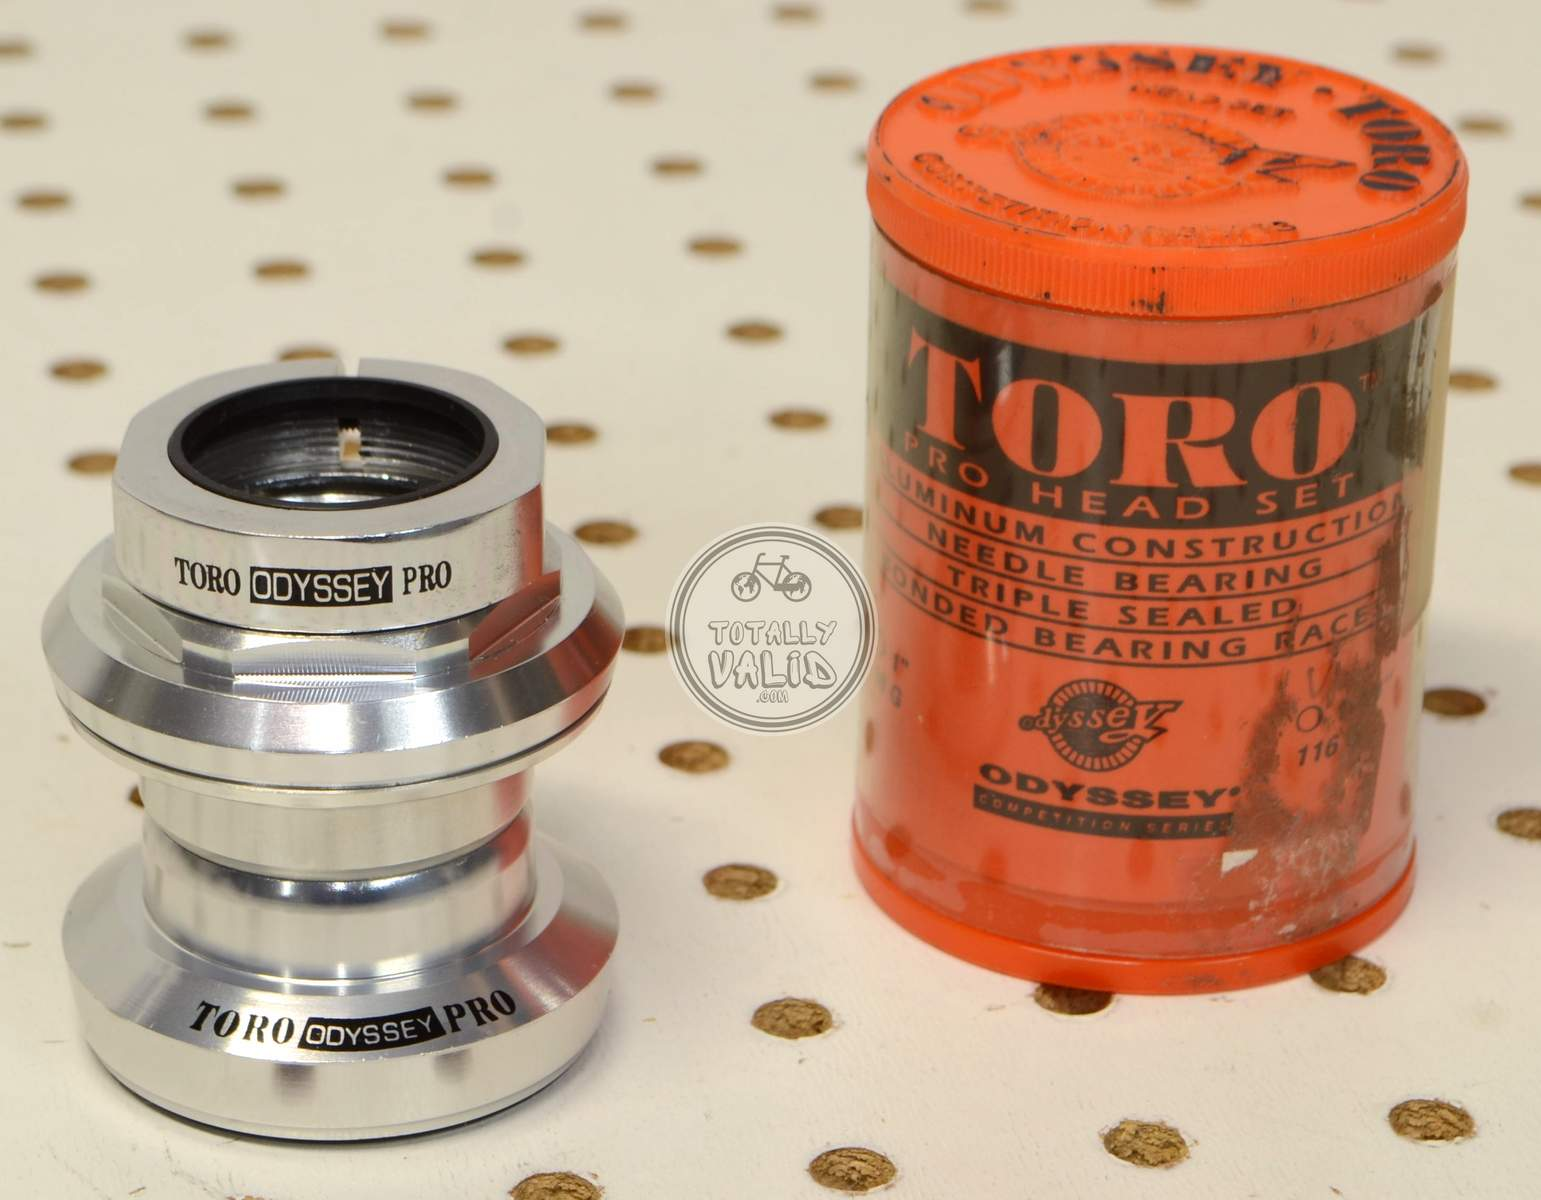 http://uploads.bmxmuseum.com/user-images/17782/odyssey-toro-pro-needle-bearing-headset-os-threaded-vintage-mtb-parts-library.75c3bba323a.jpg